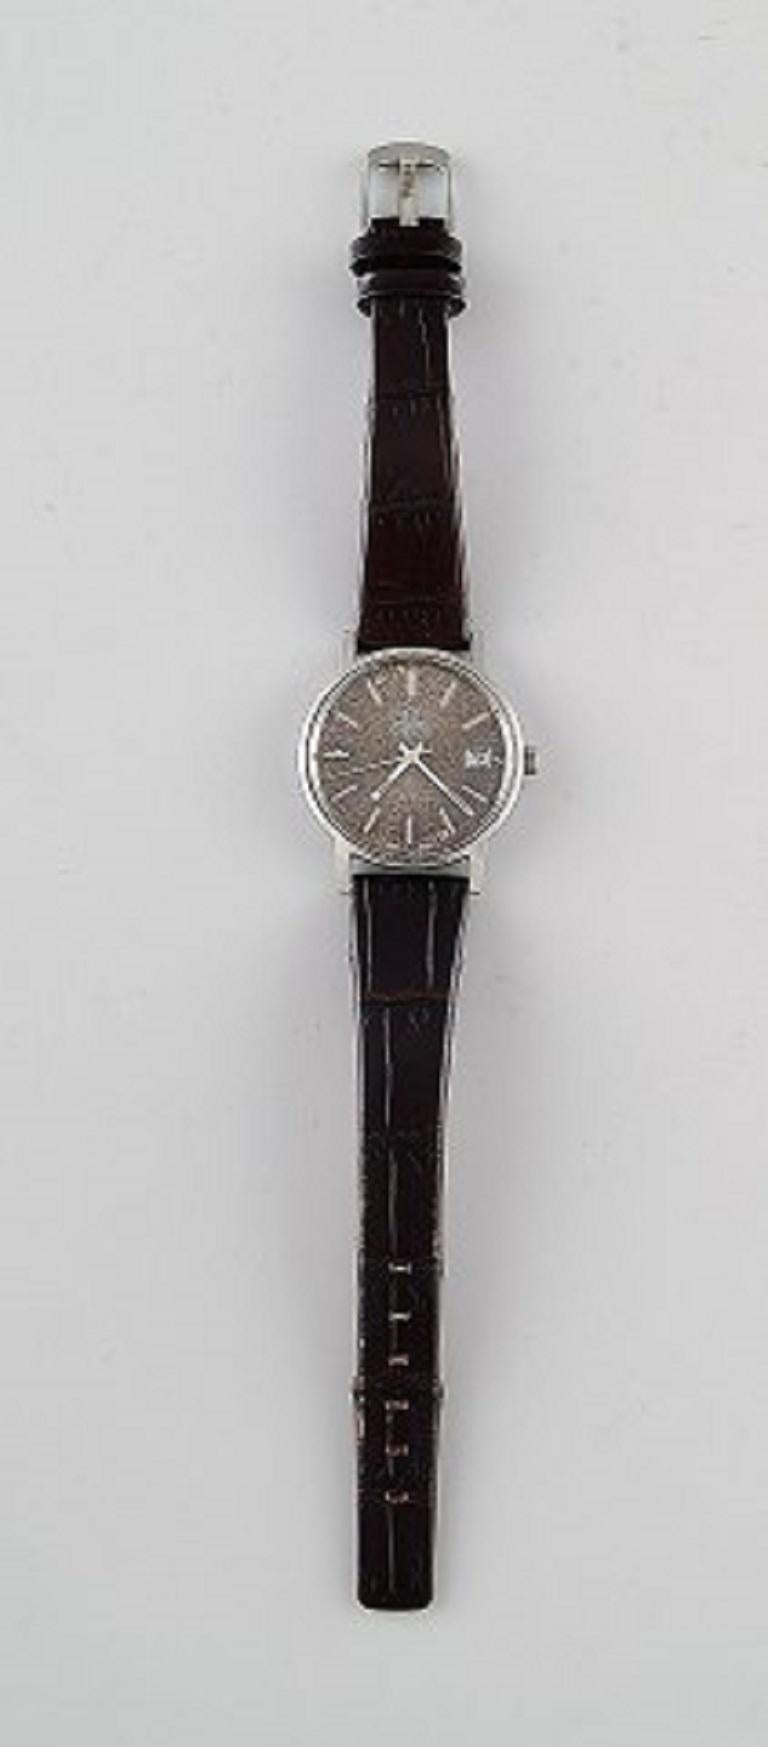 Omega Genéve Automatic, Vintage Men's Wrist Watch, 1960s. In very good condition. The clock works. Diameter 35 mm.